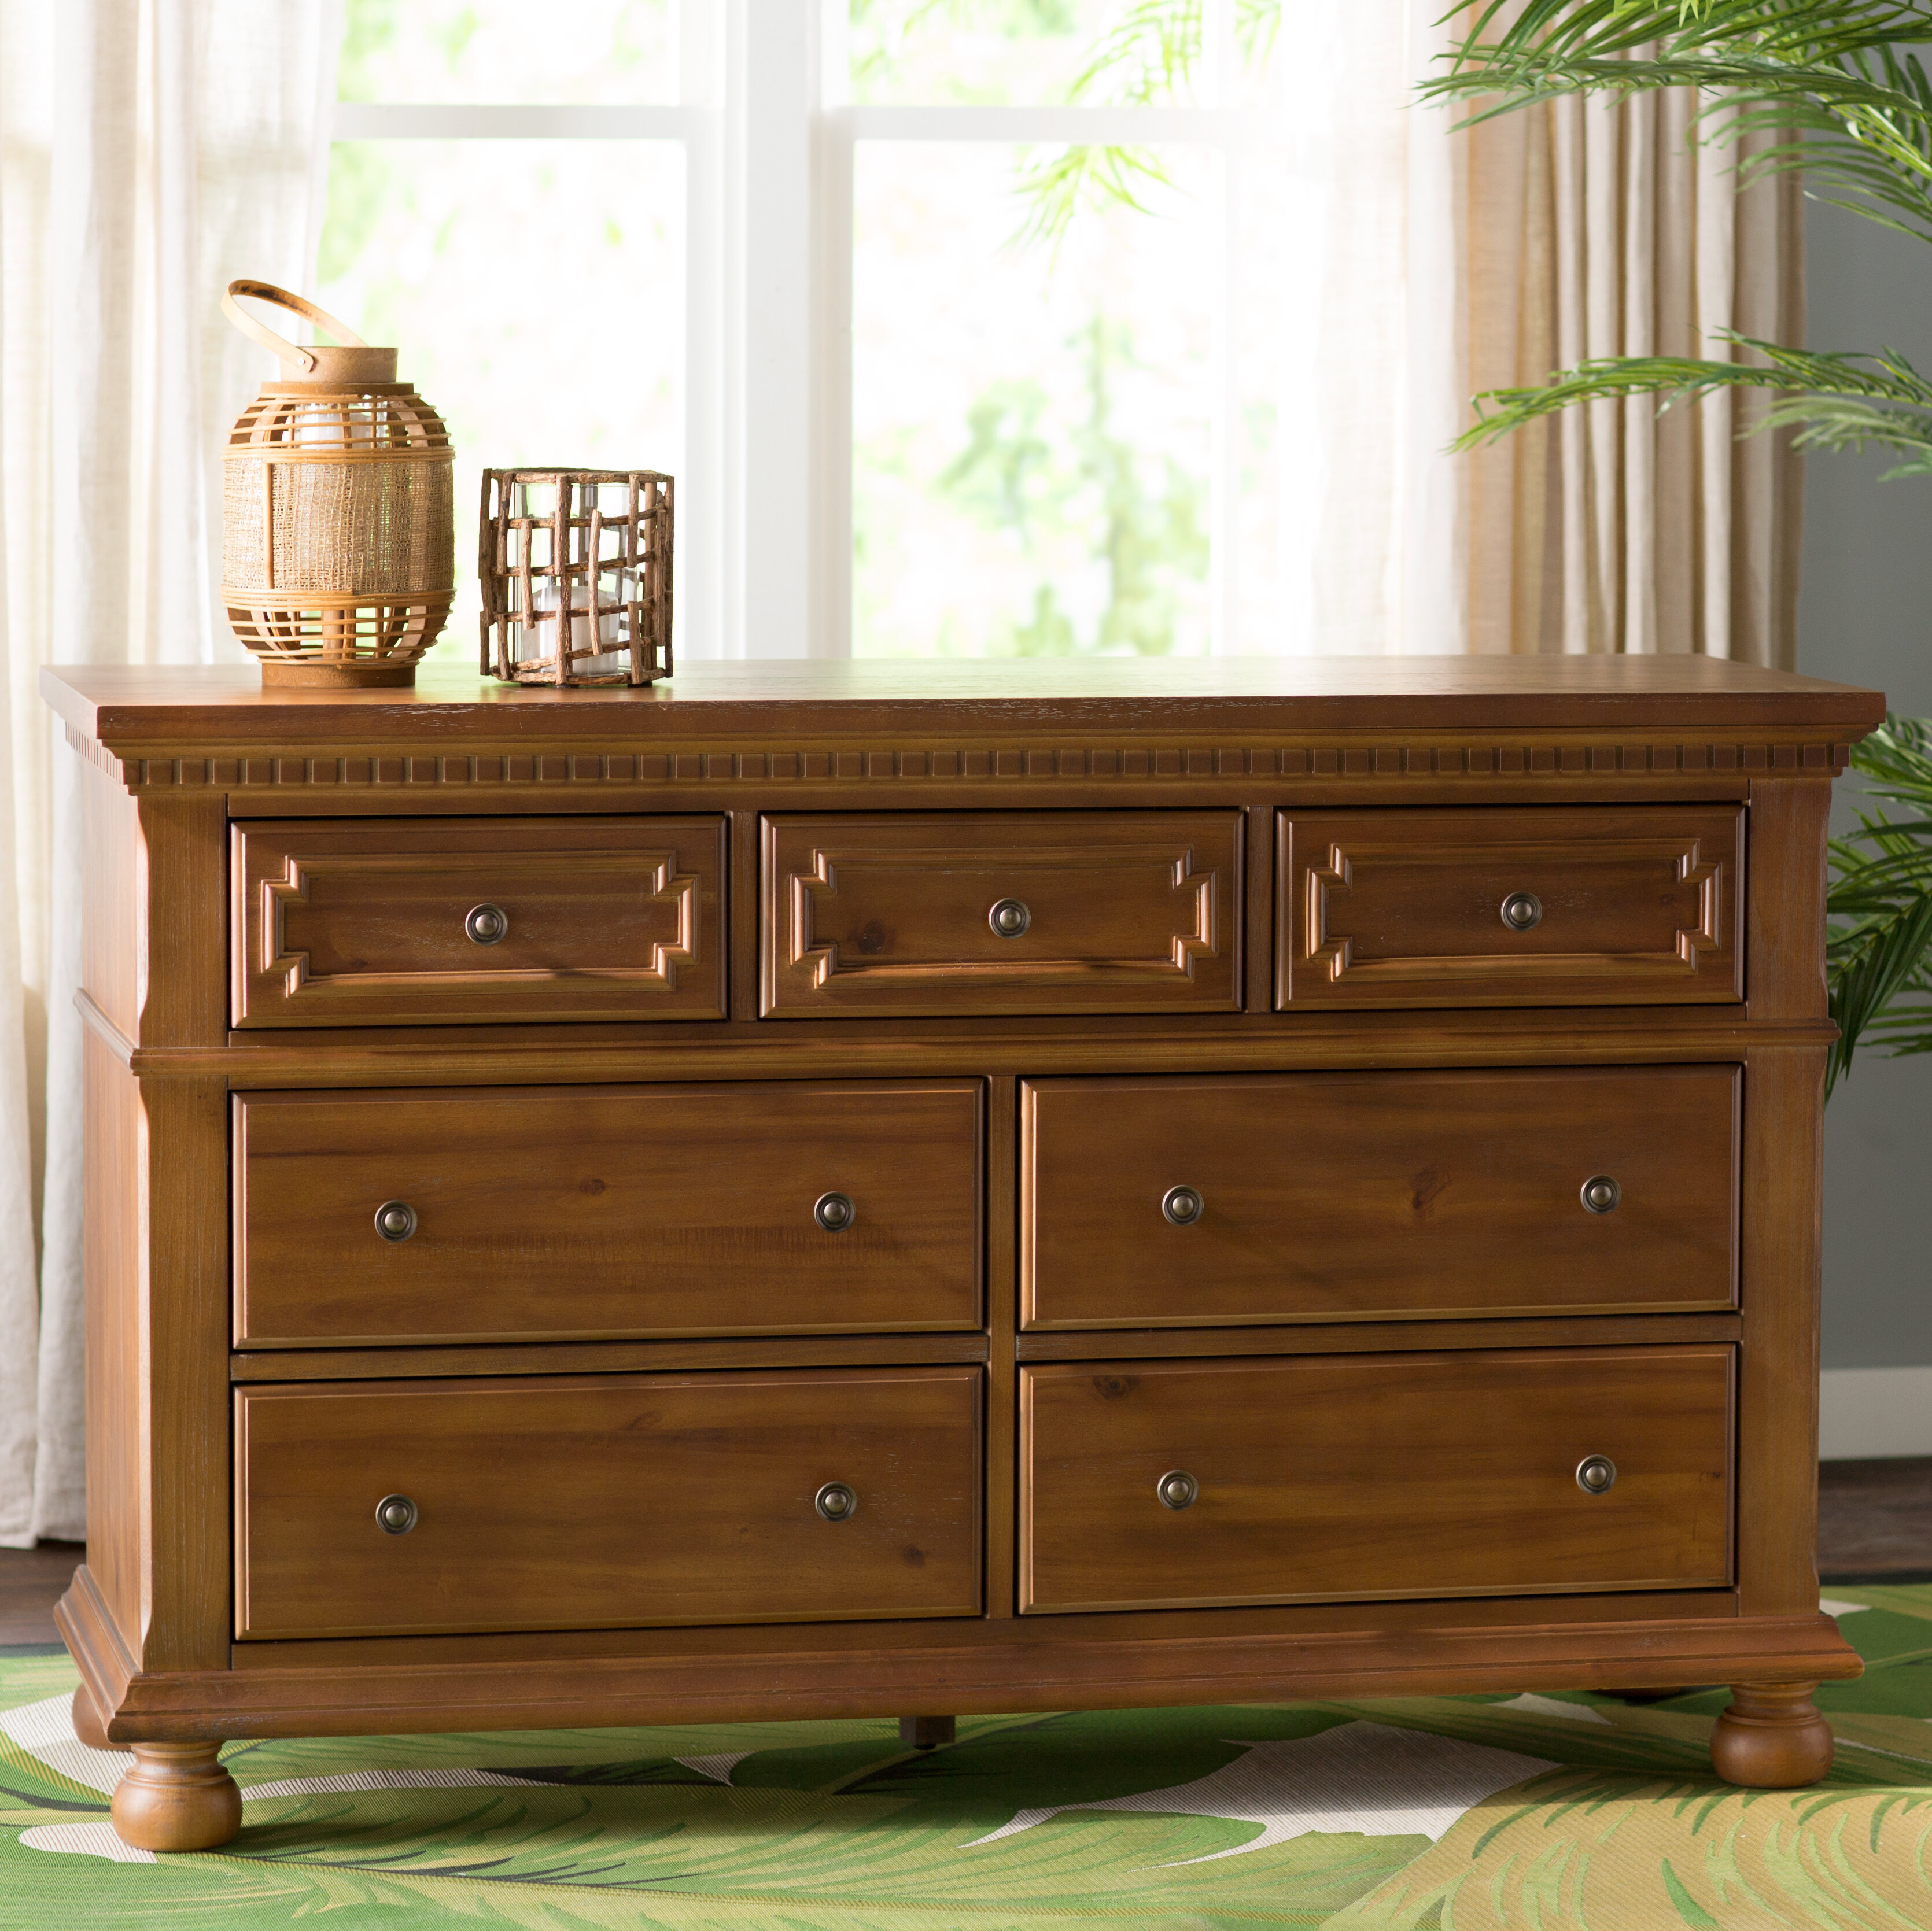 changer shipping home garden perse product davinci dresser removable with kalani overstock free today changing tray drawer